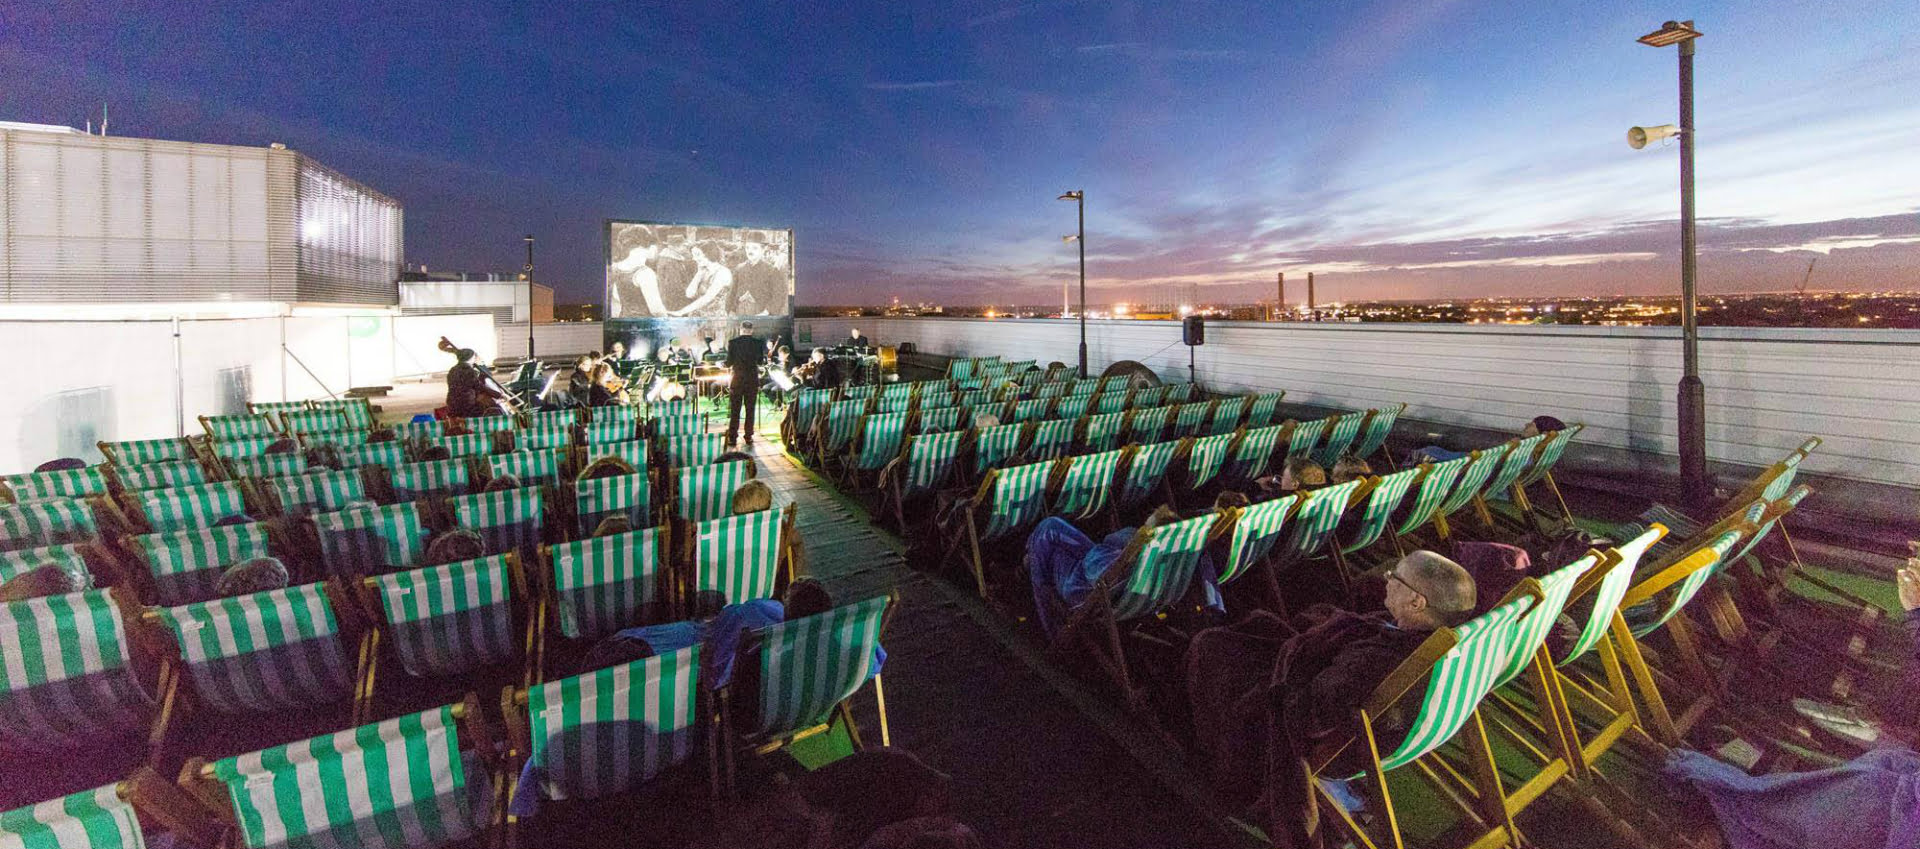 reputable site ede57 29bfb The Best Outdoor, Pop Up Cinemas London   Summer 2019